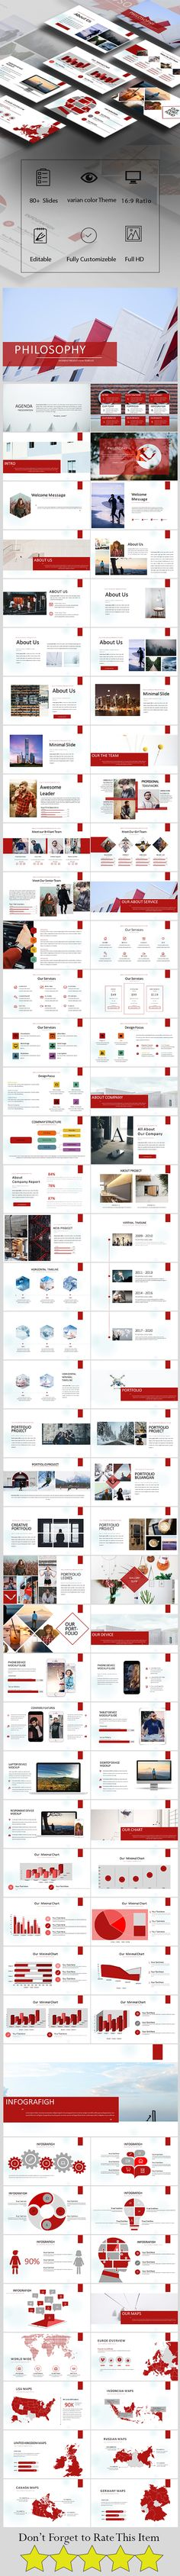 23 red business report powerpoint templates the highest quality philosophy multipurpose presentation toneelgroepblik Image collections